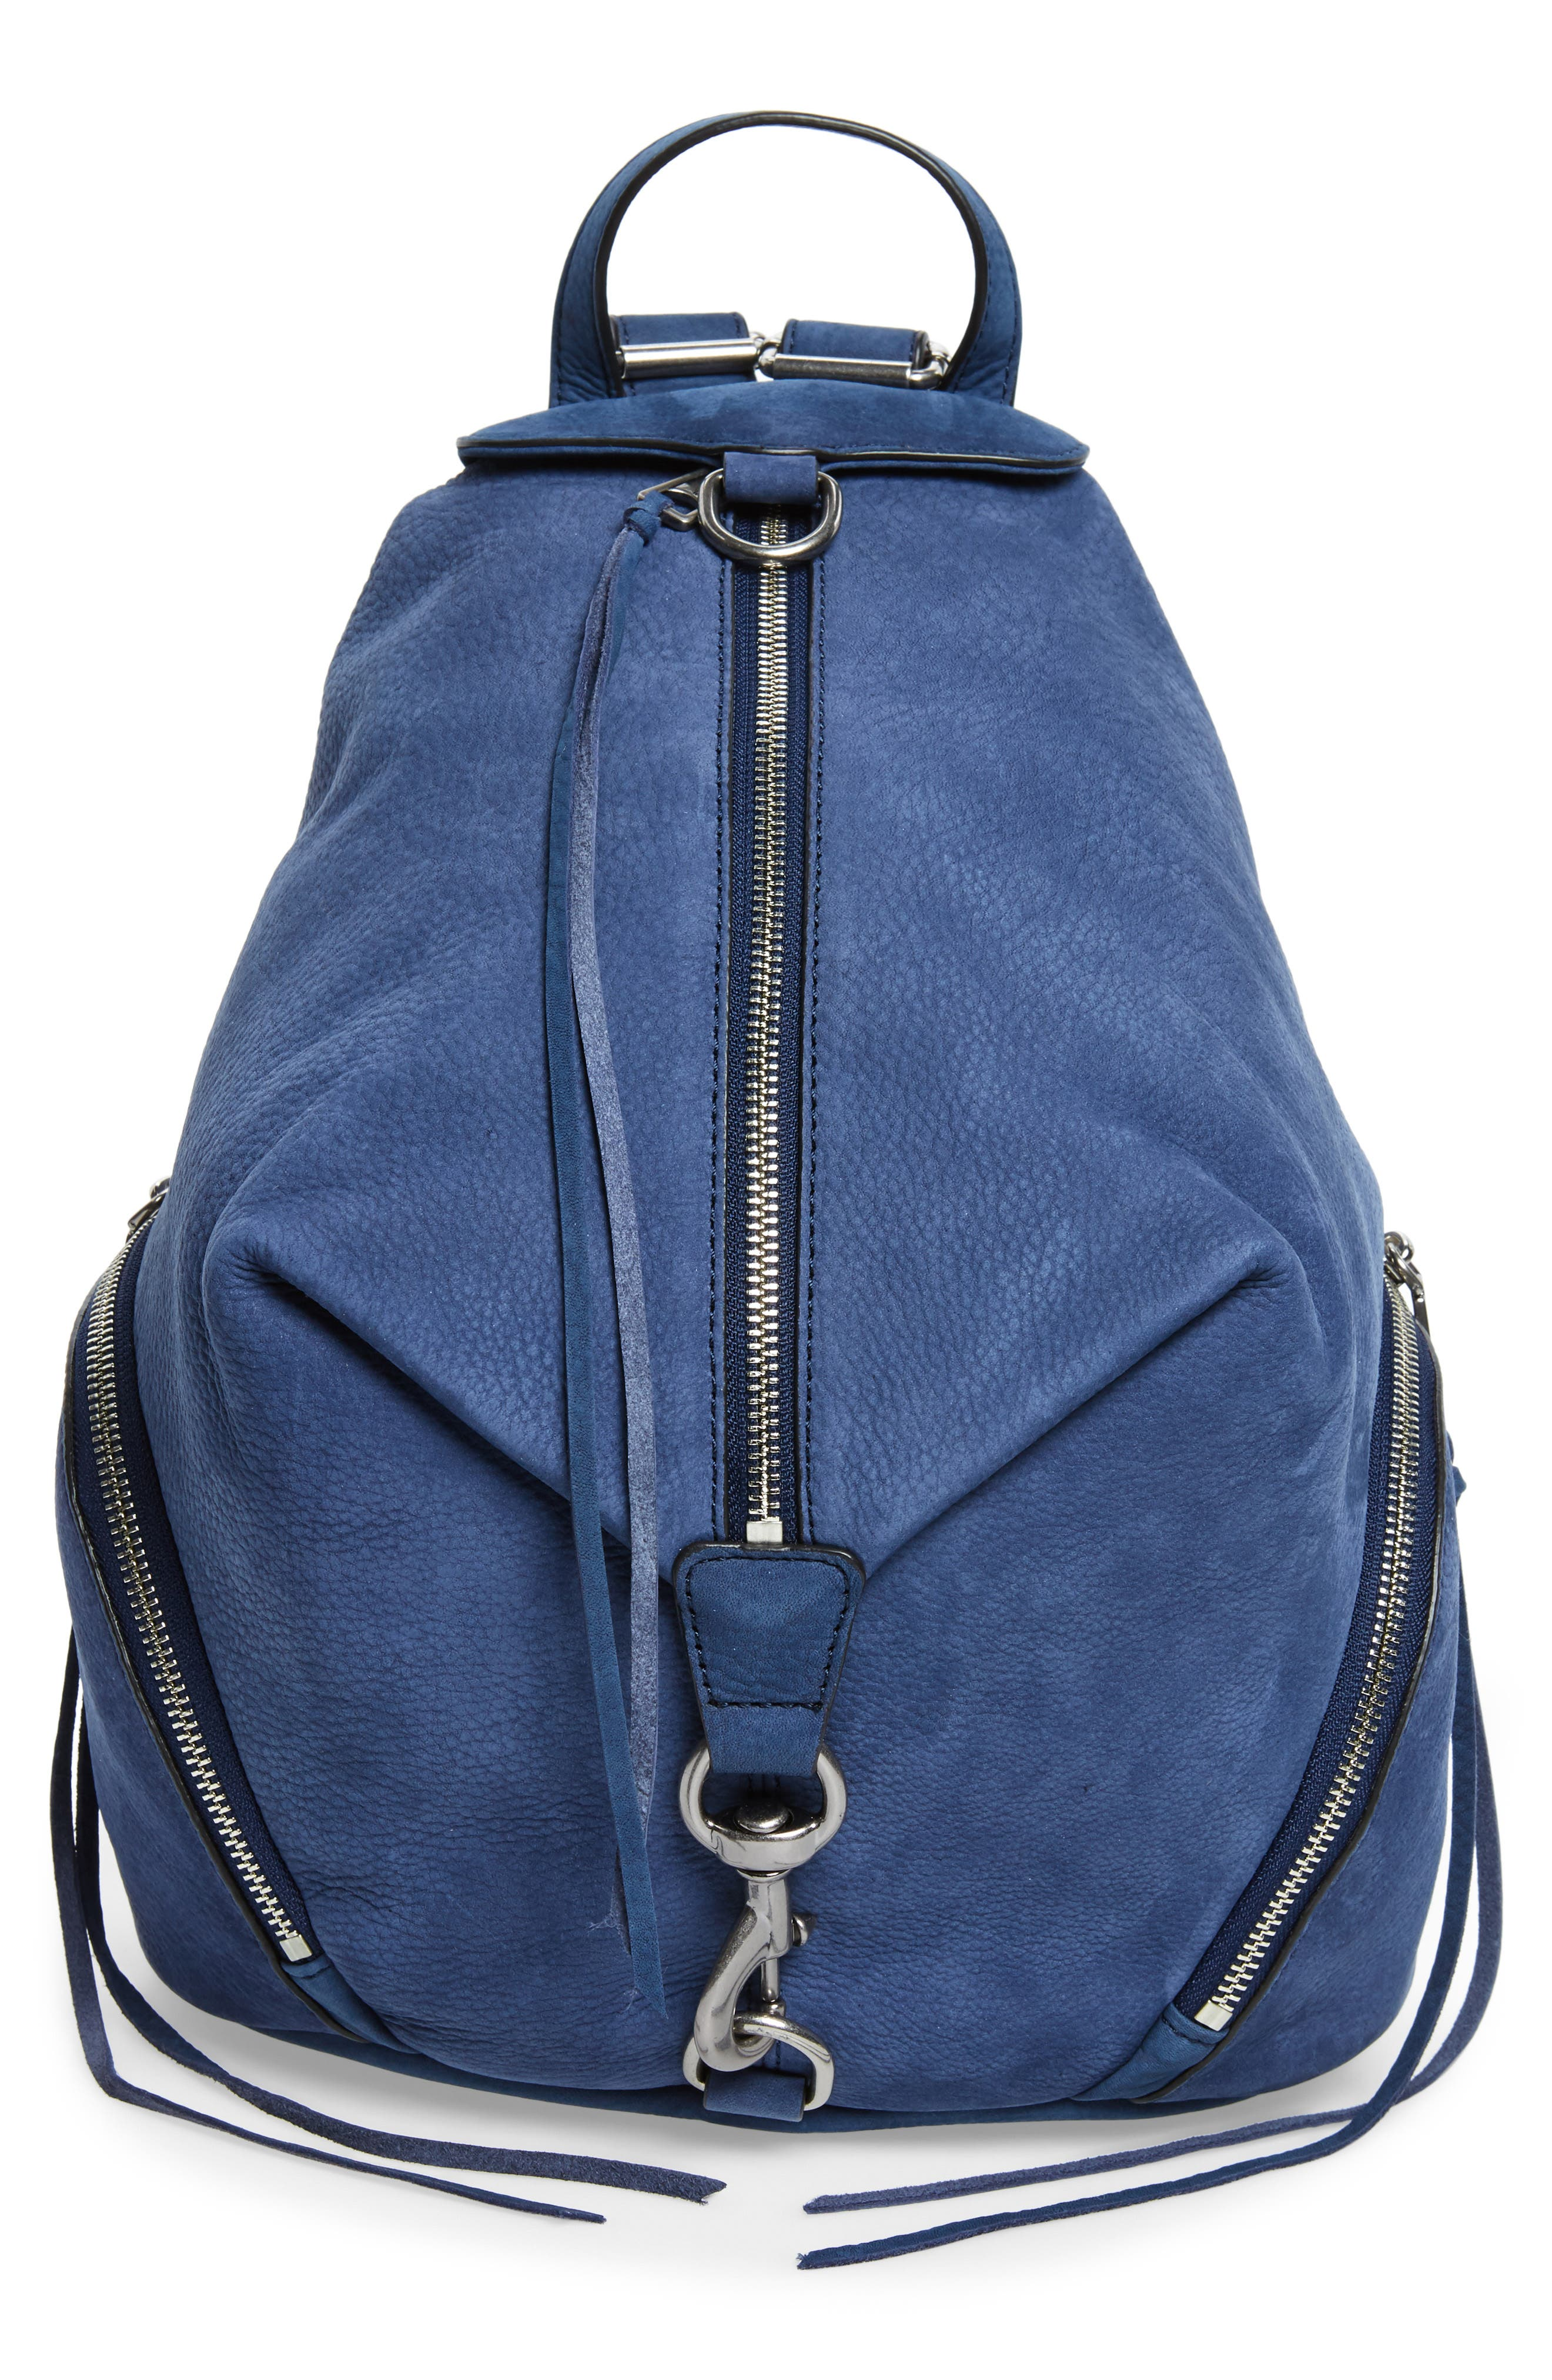 Julian Convertible Nubuck Leather Backpack,                         Main,                         color, 483